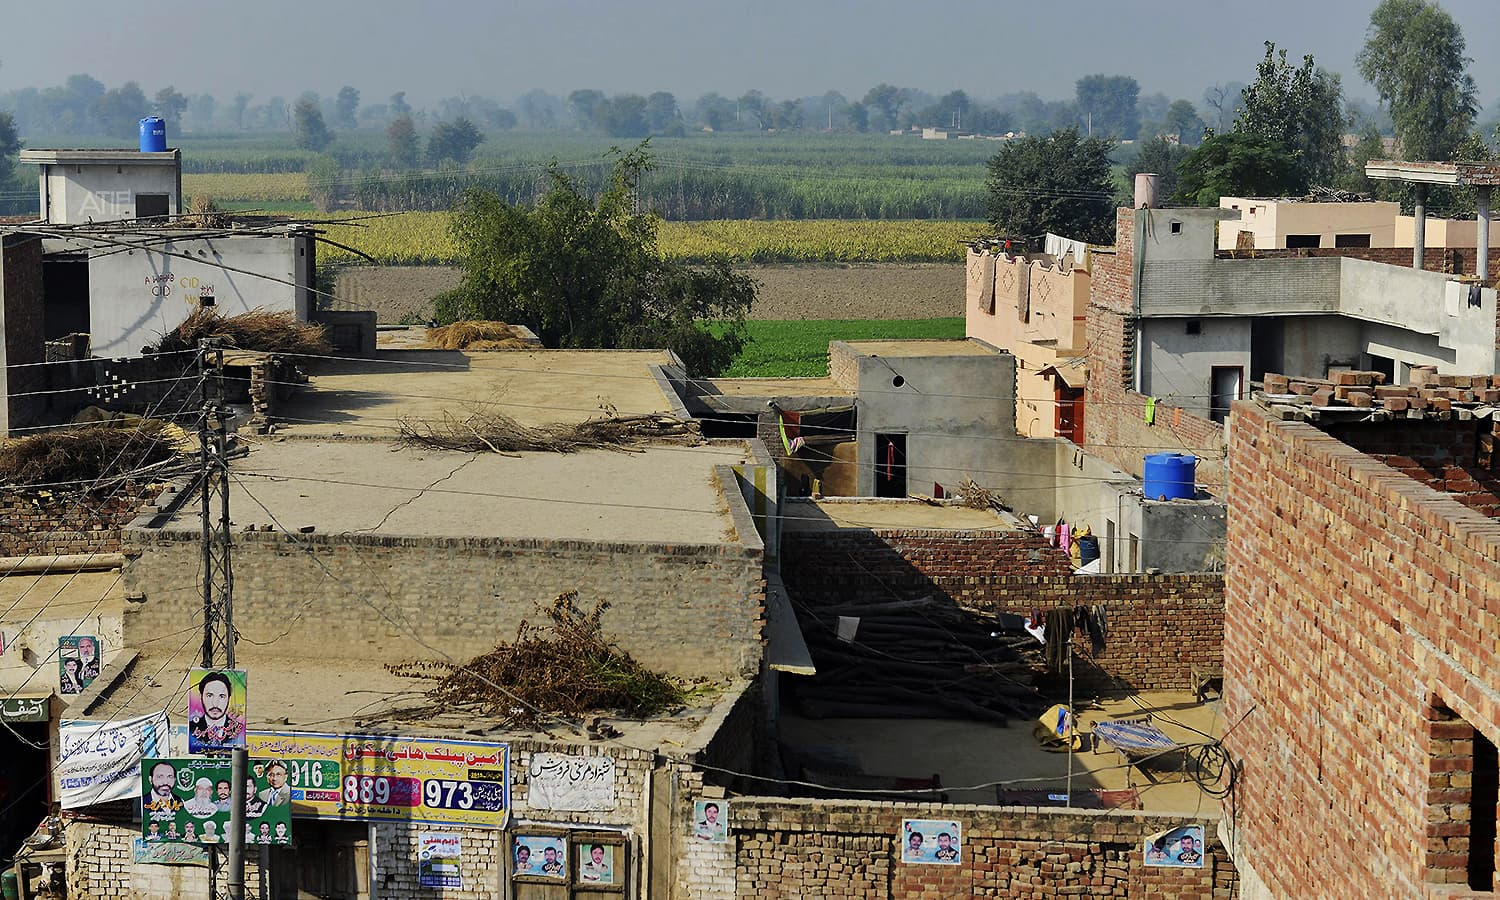 This photograph taken on November 20, 2015, shows Hussain Khan Wala village in Punjab province, the scene of one of Pakistan's worst child abuse cases. — AFP